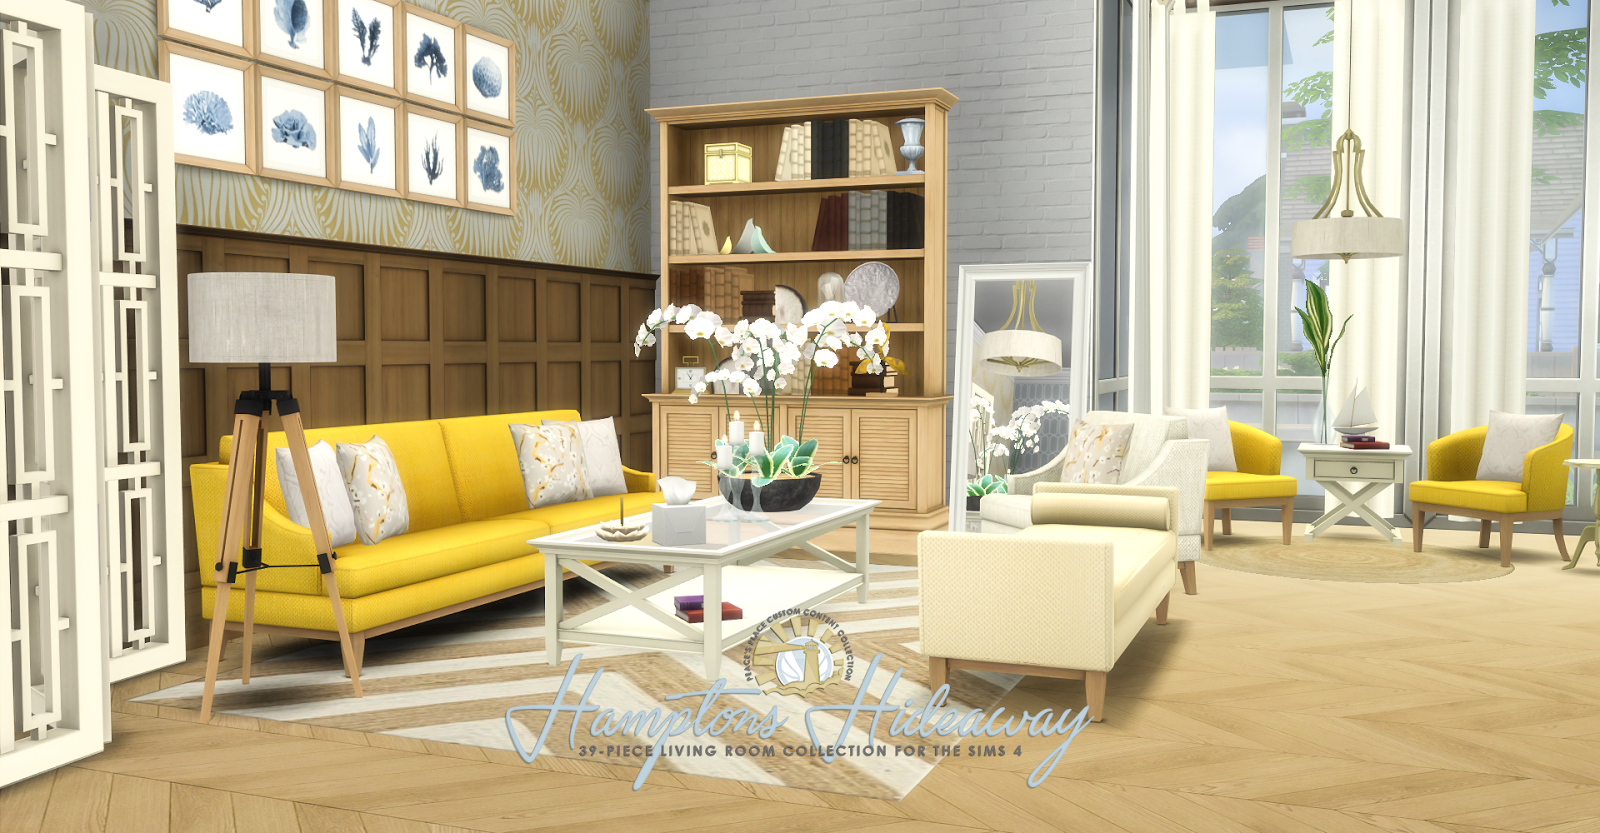 Hampton Hideaway Living Room Set by Peacemaker ic